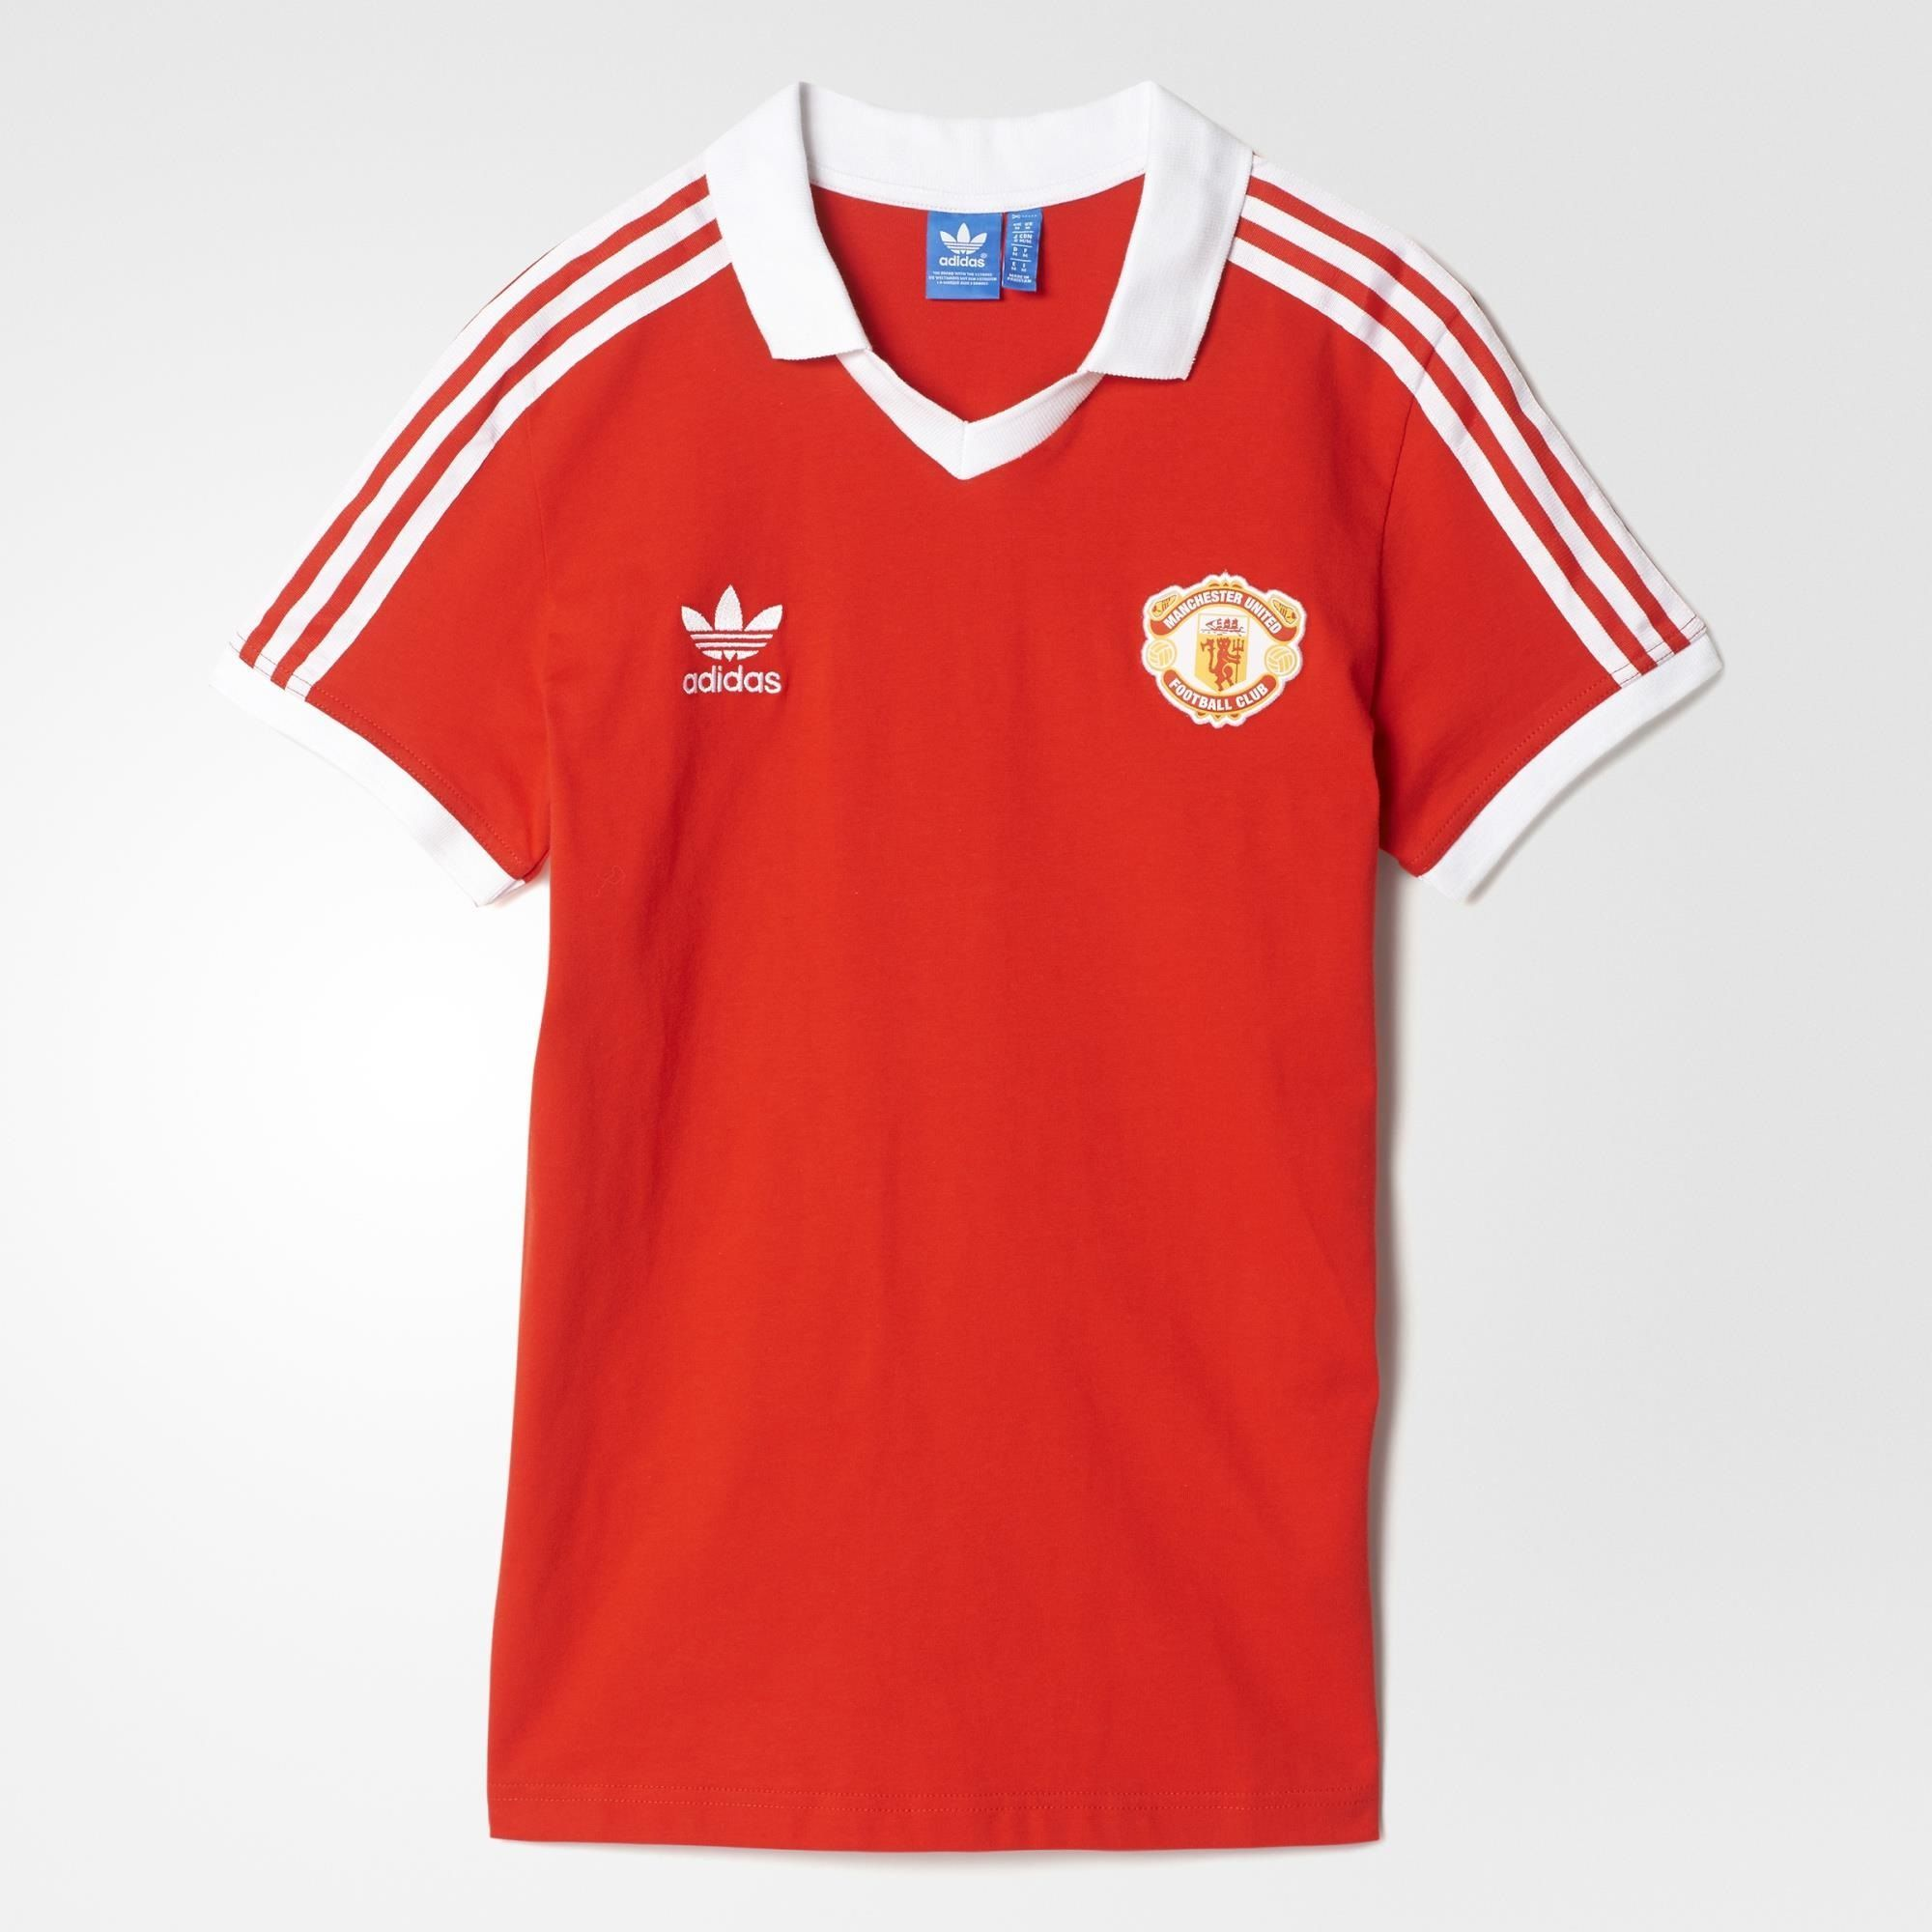 on sale 03ff8 4aa57 Manchester United retro jersey. adidas Originals. $65 ...